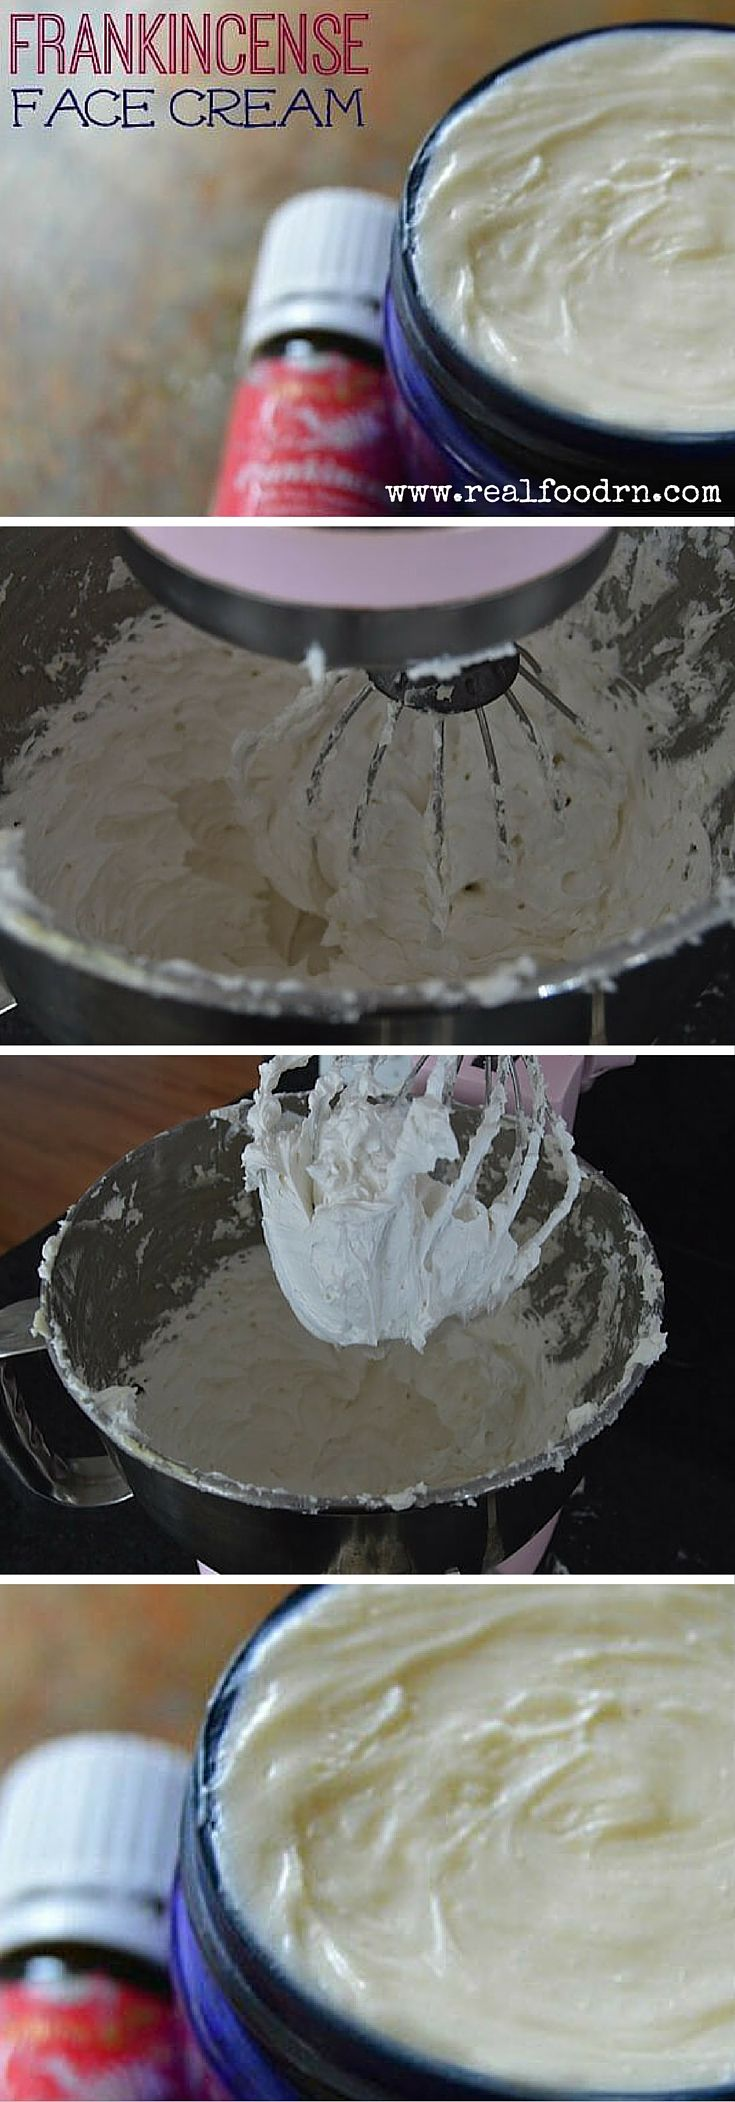 Frankincense Face Cream. Improve the appearance of your skin and make it silky soft. Super easy to make in your own kitchen! I have had so many people tell me that this is the best face cream they have ever used! realfoodrn.com #frankincense #diyfacecream